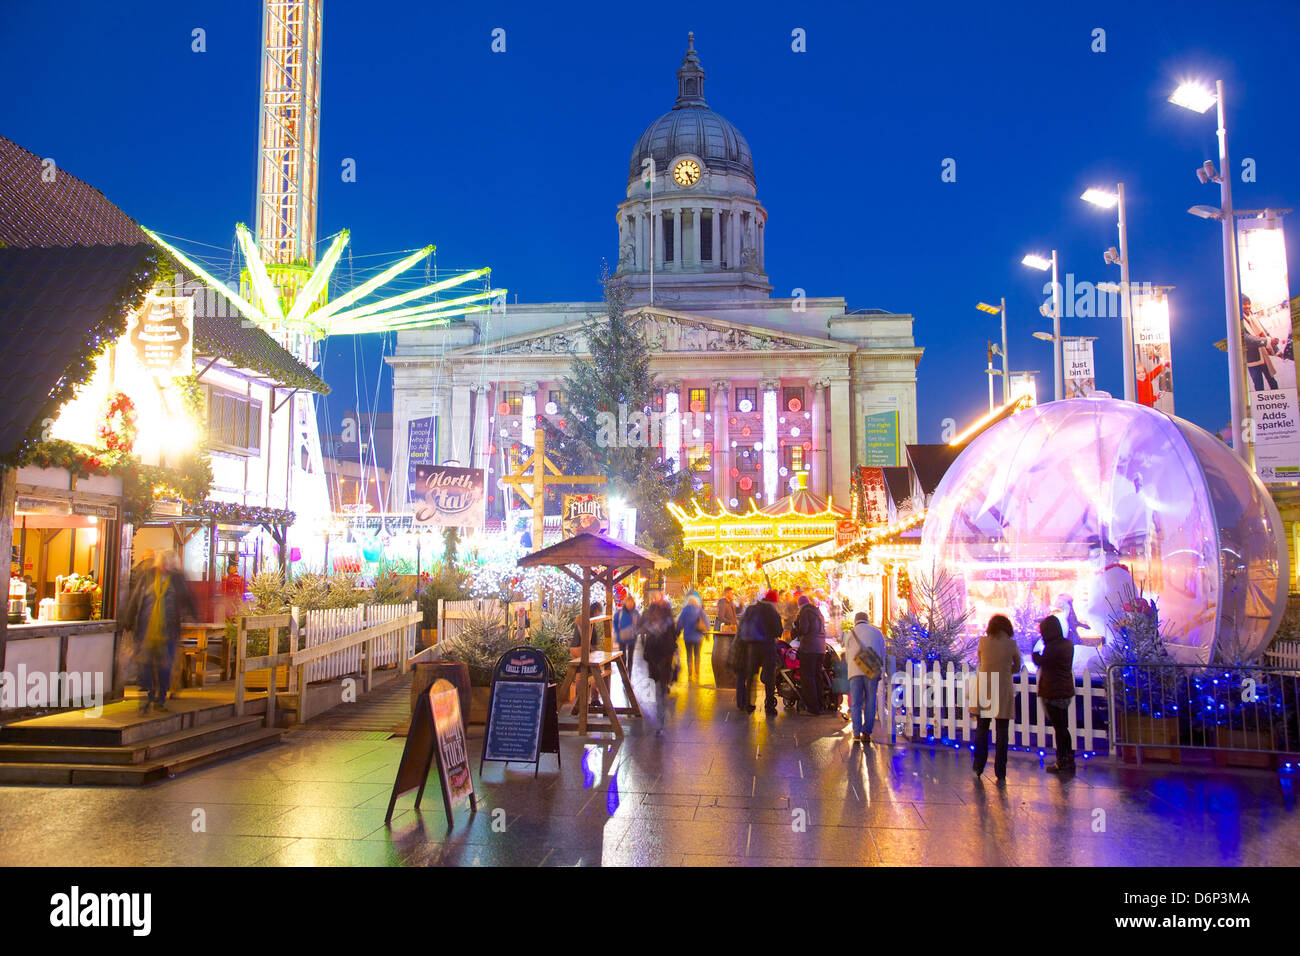 Council House and Christmas Market stalls in the Market Square, Nottingham, Nottinghamshire, England, United Kingdom, - Stock Image